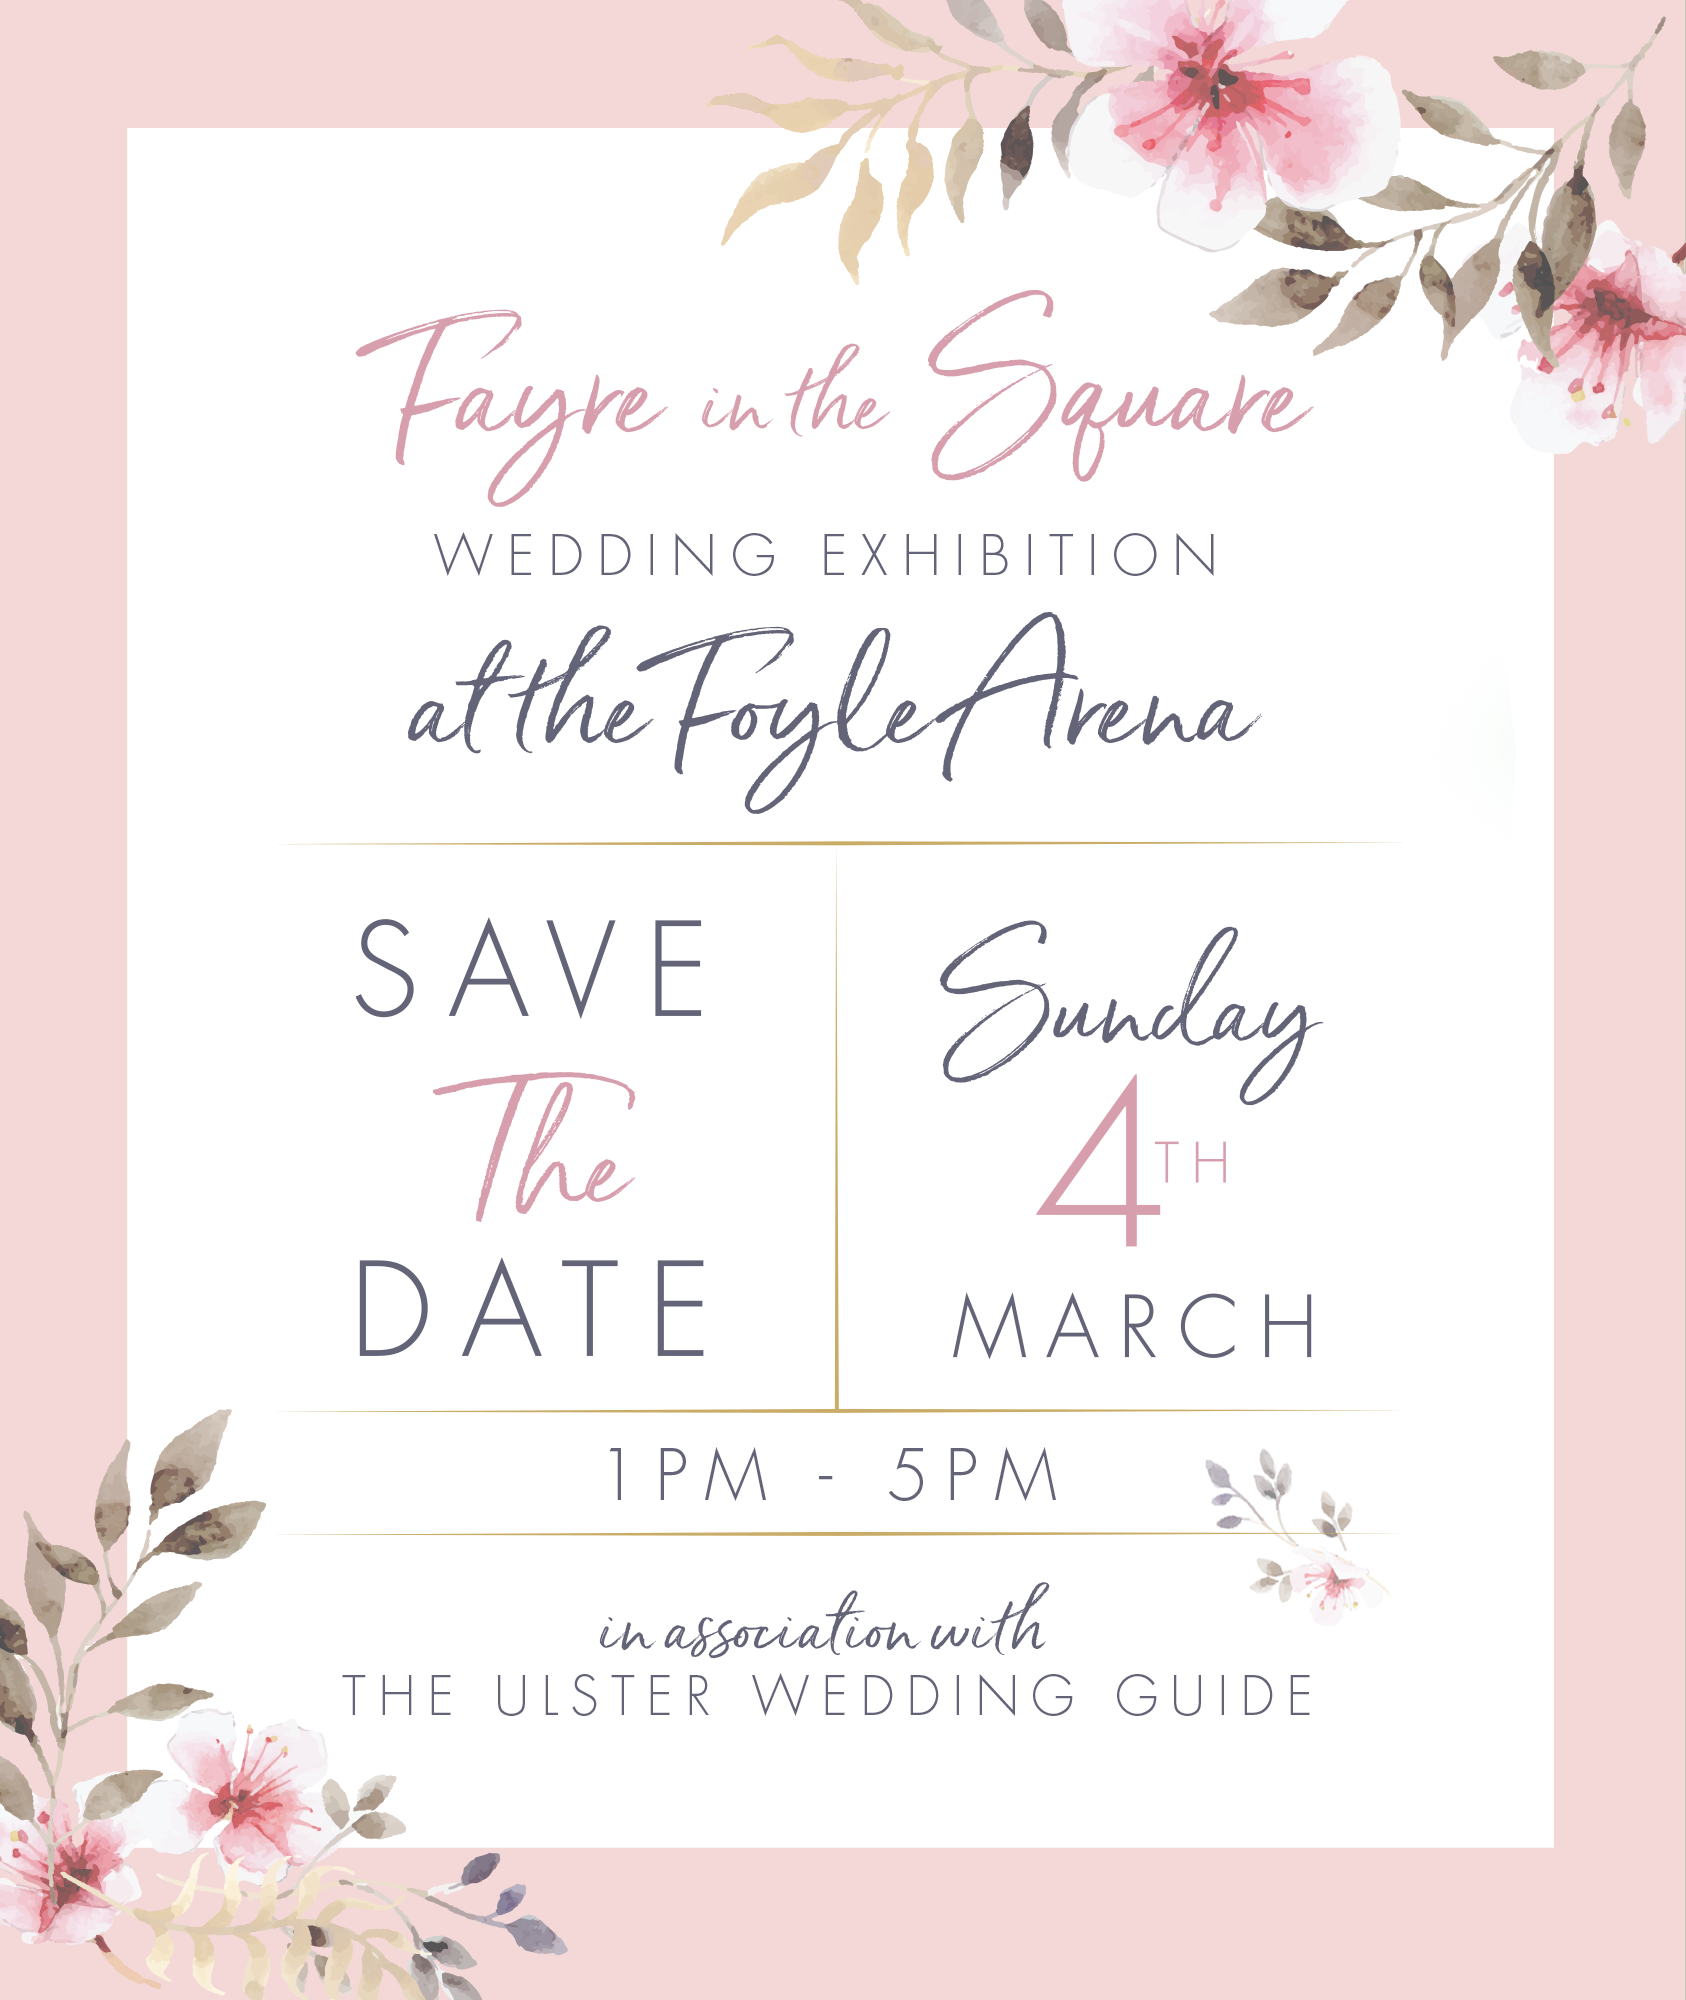 Fayre in the Square - Save the Date.png